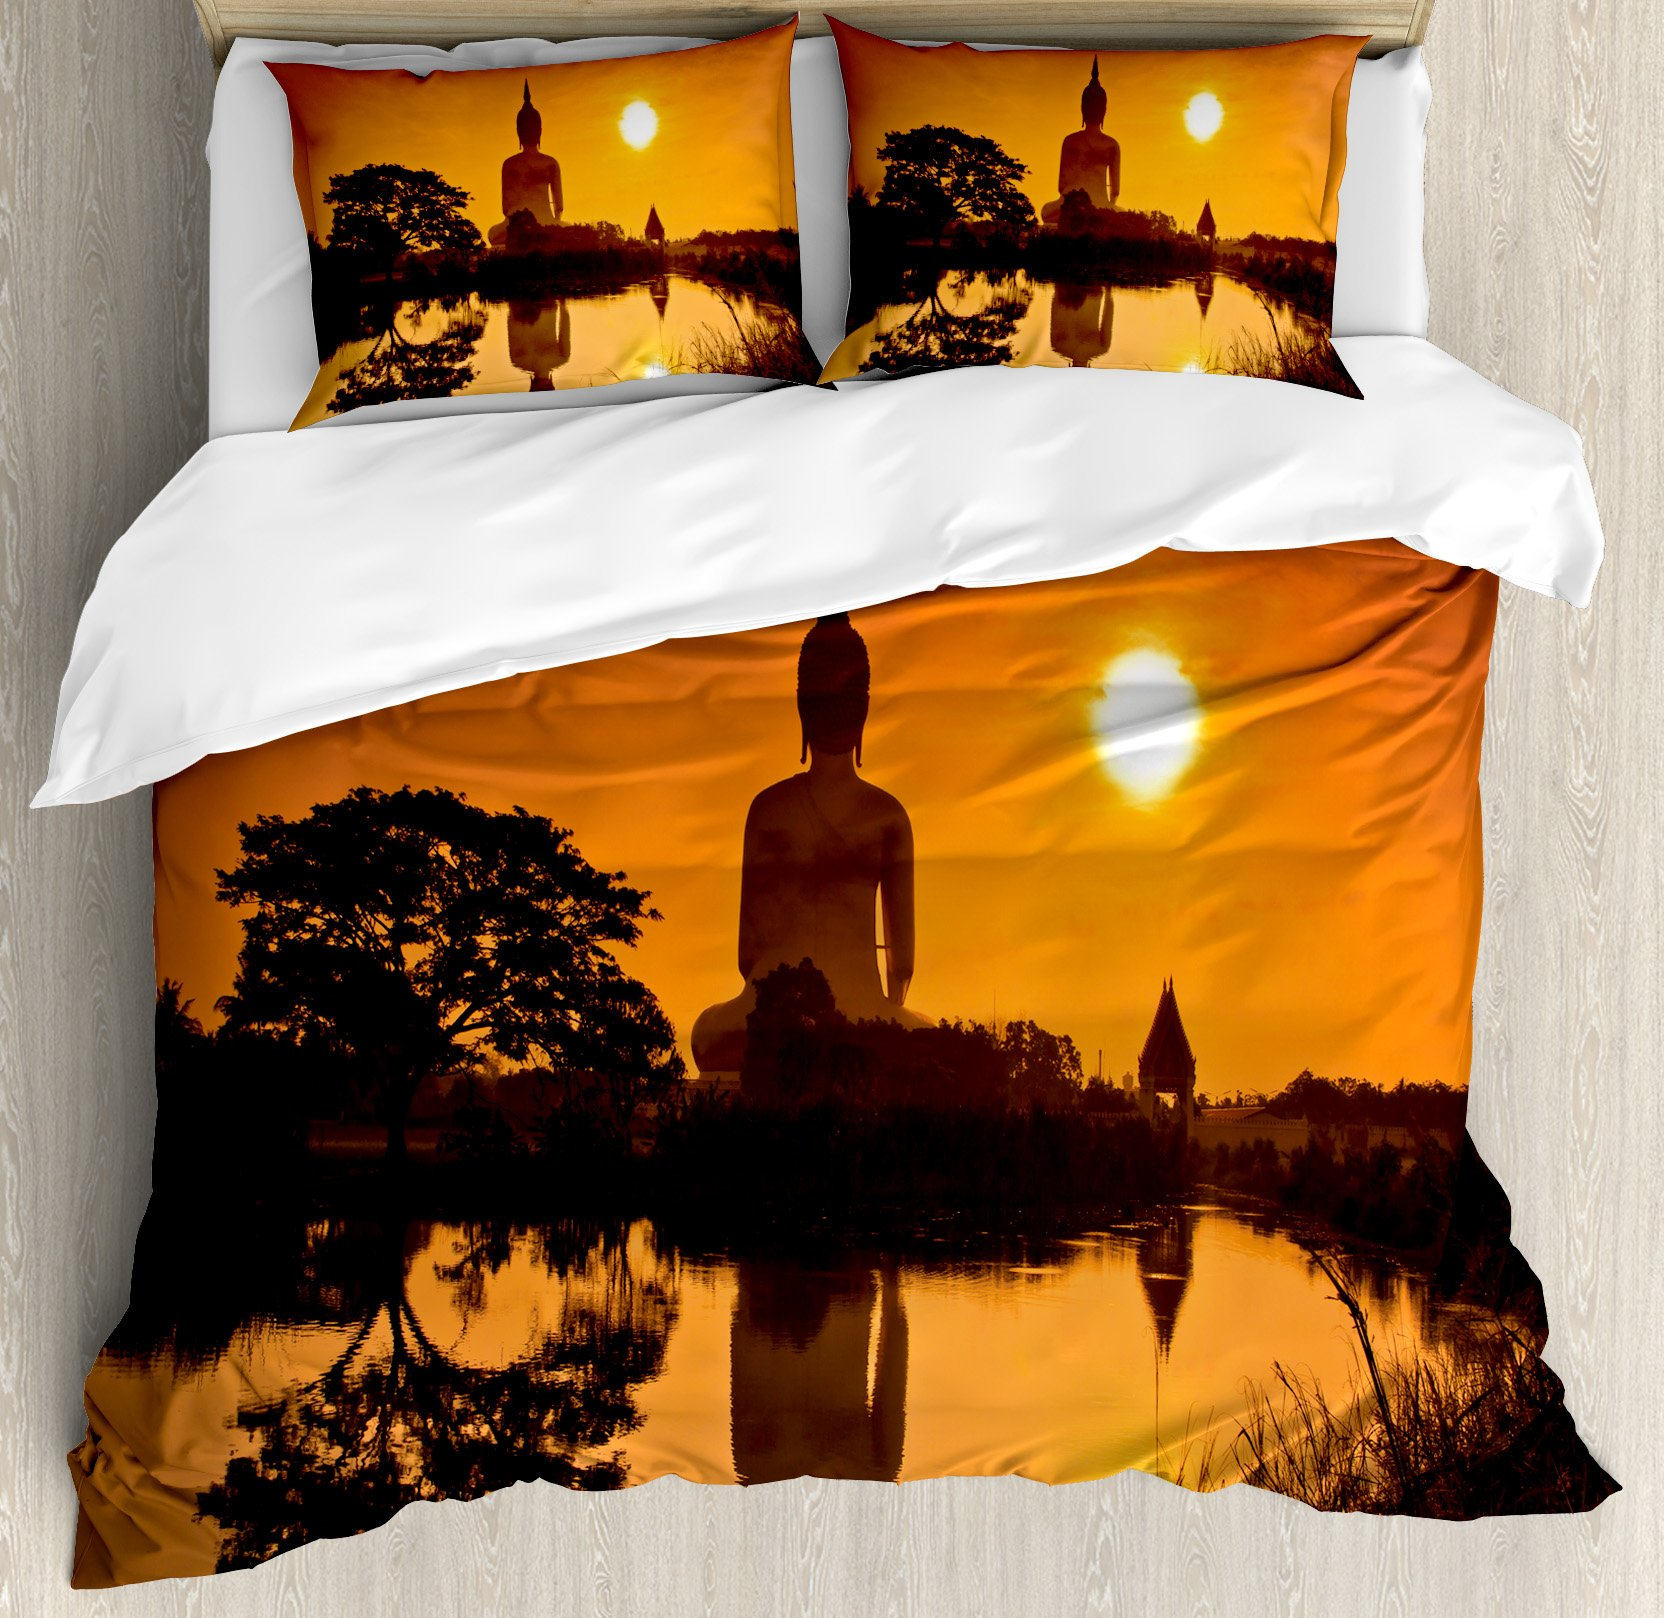 Asian Decor King Size Duvet Cover Set by Ambesonne, Big Giant Statue by the River at Sunset Thai Asian Culture Scenery Zen Print, Decorative 3 Piece Bedding Set with 2 Pillow Shams, Burnt Orange by Ambesonne